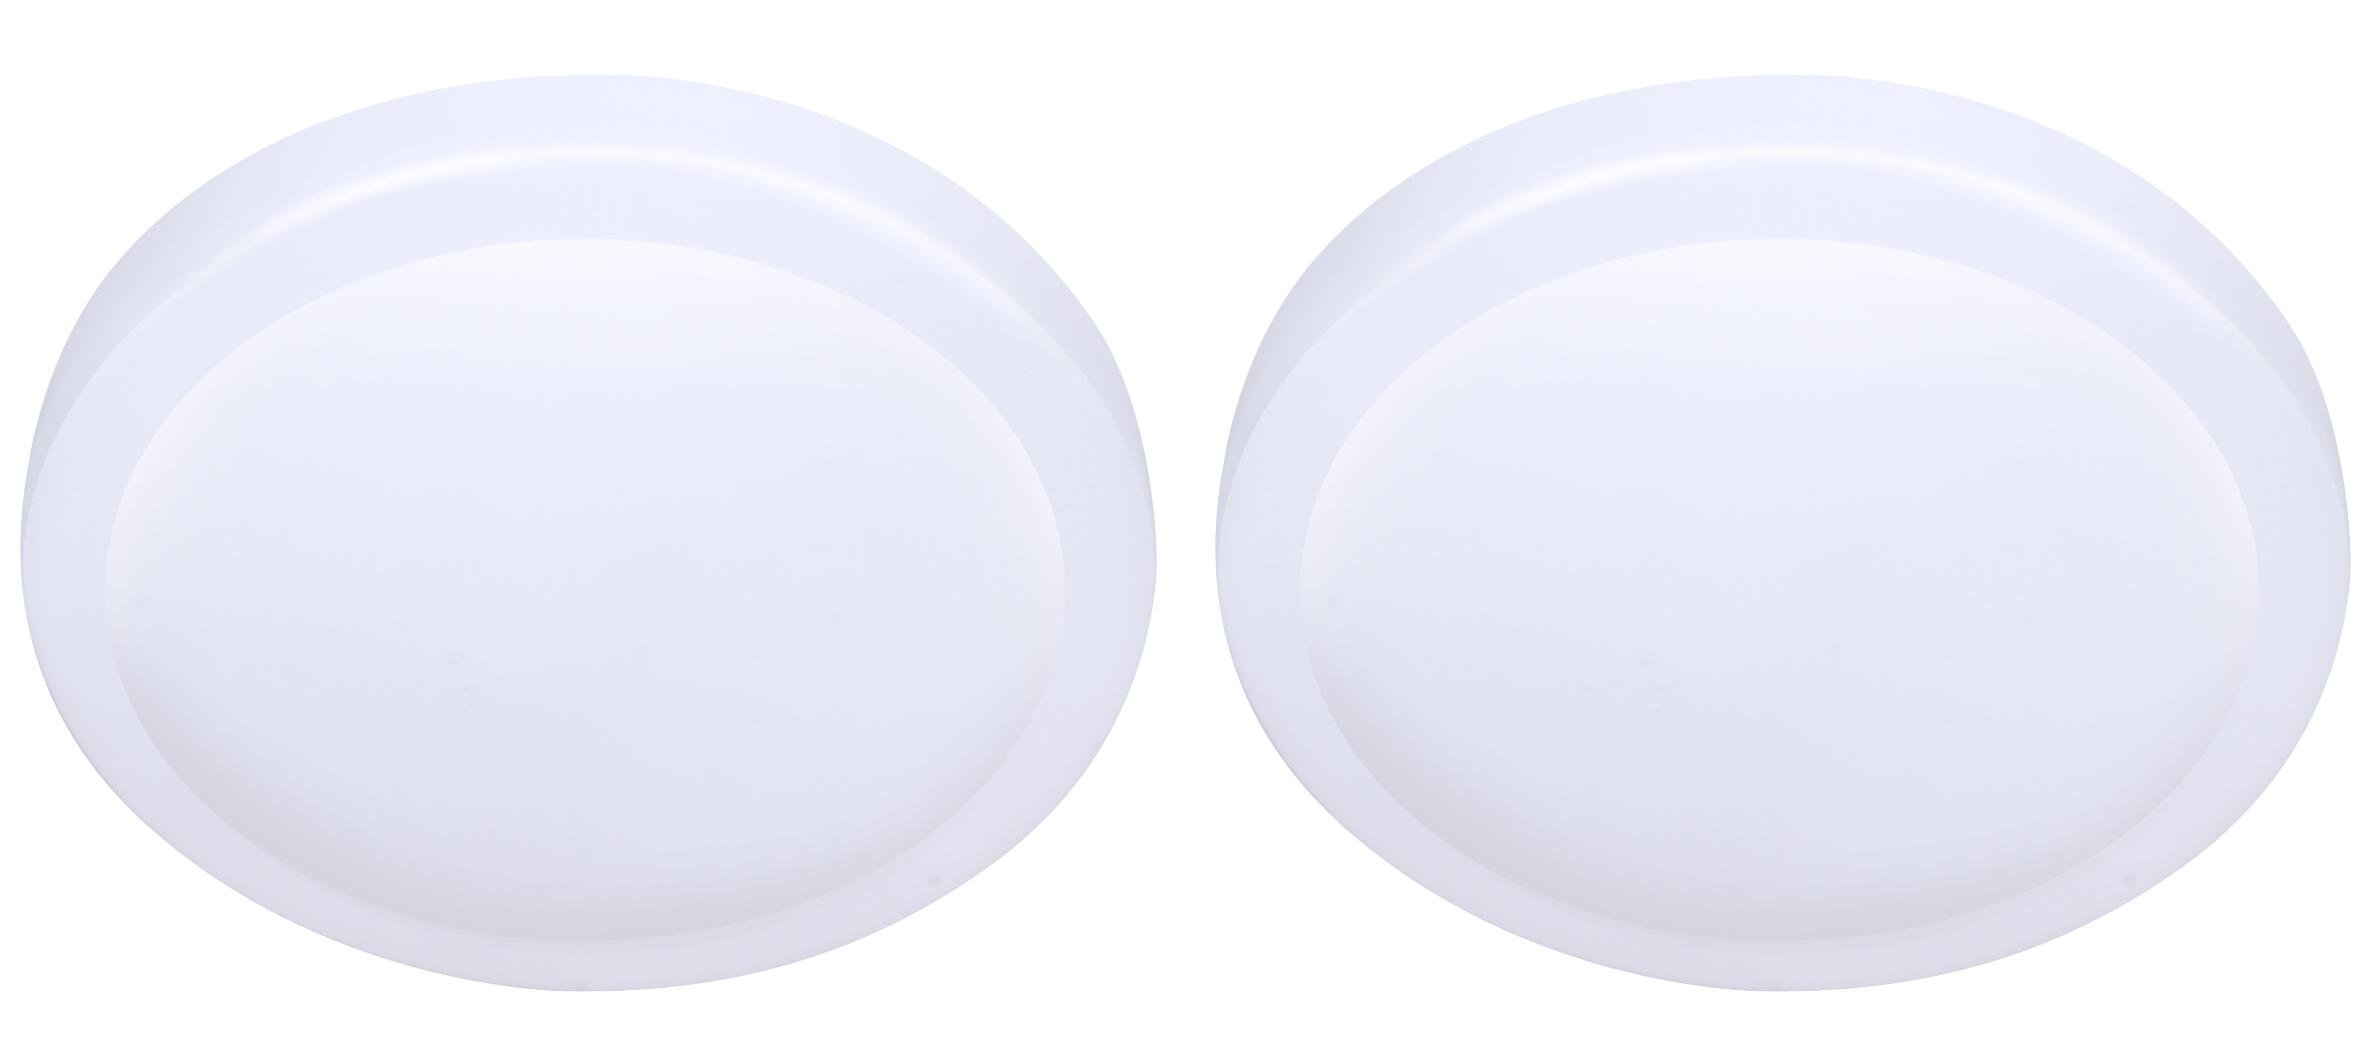 LIT-PaTH 7 Inch LED Flush Mount Ceiling Lighting Fixture, 11W (75W Equivalent), Dimmable, 800 Lumen, Damp Location Rated, ETL and ES Qualified, 2-Pack